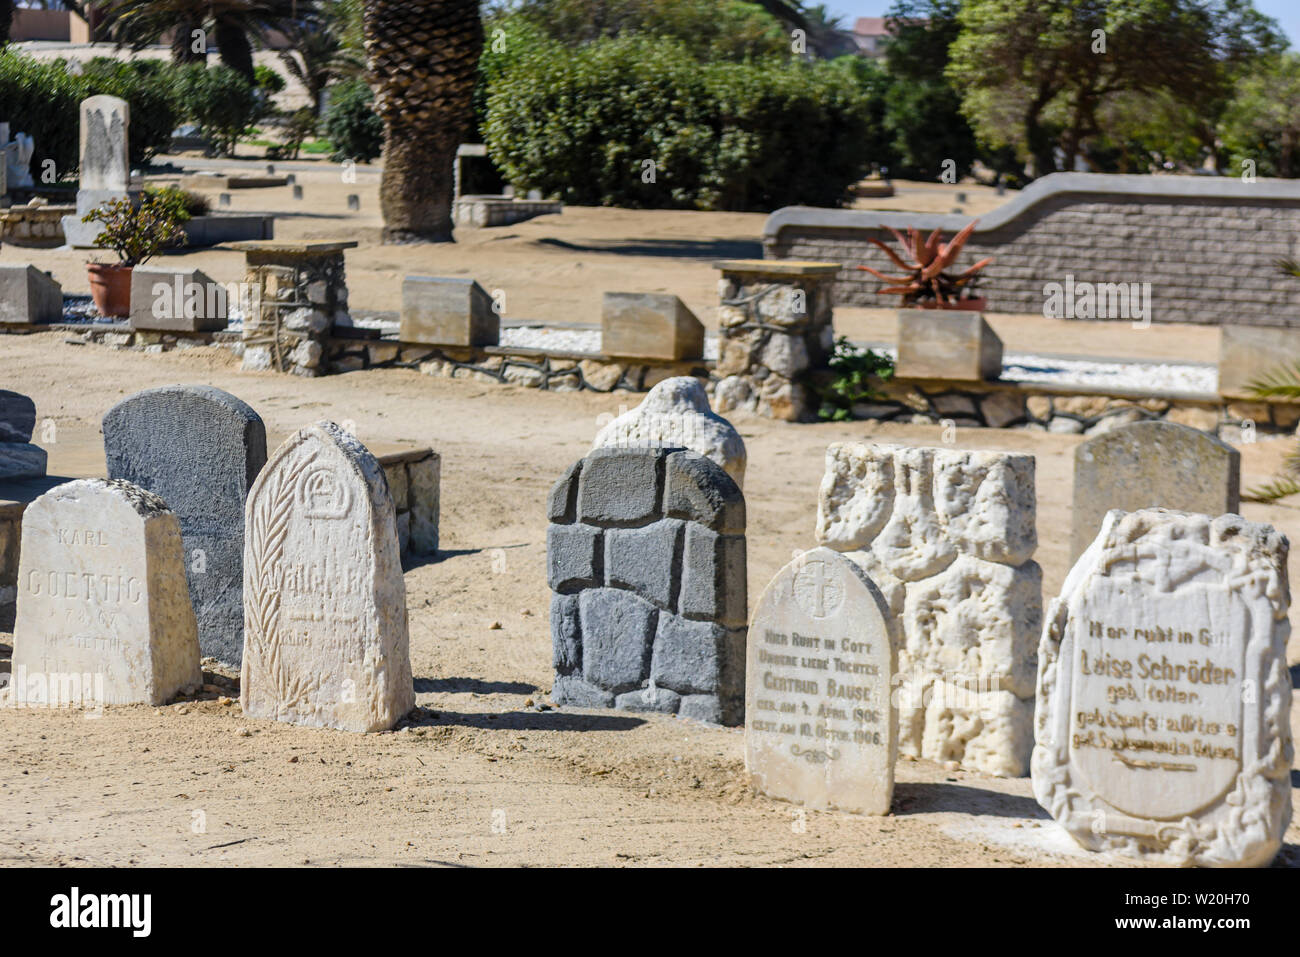 Headstones in a German graveyard, Namibia Stock Photo